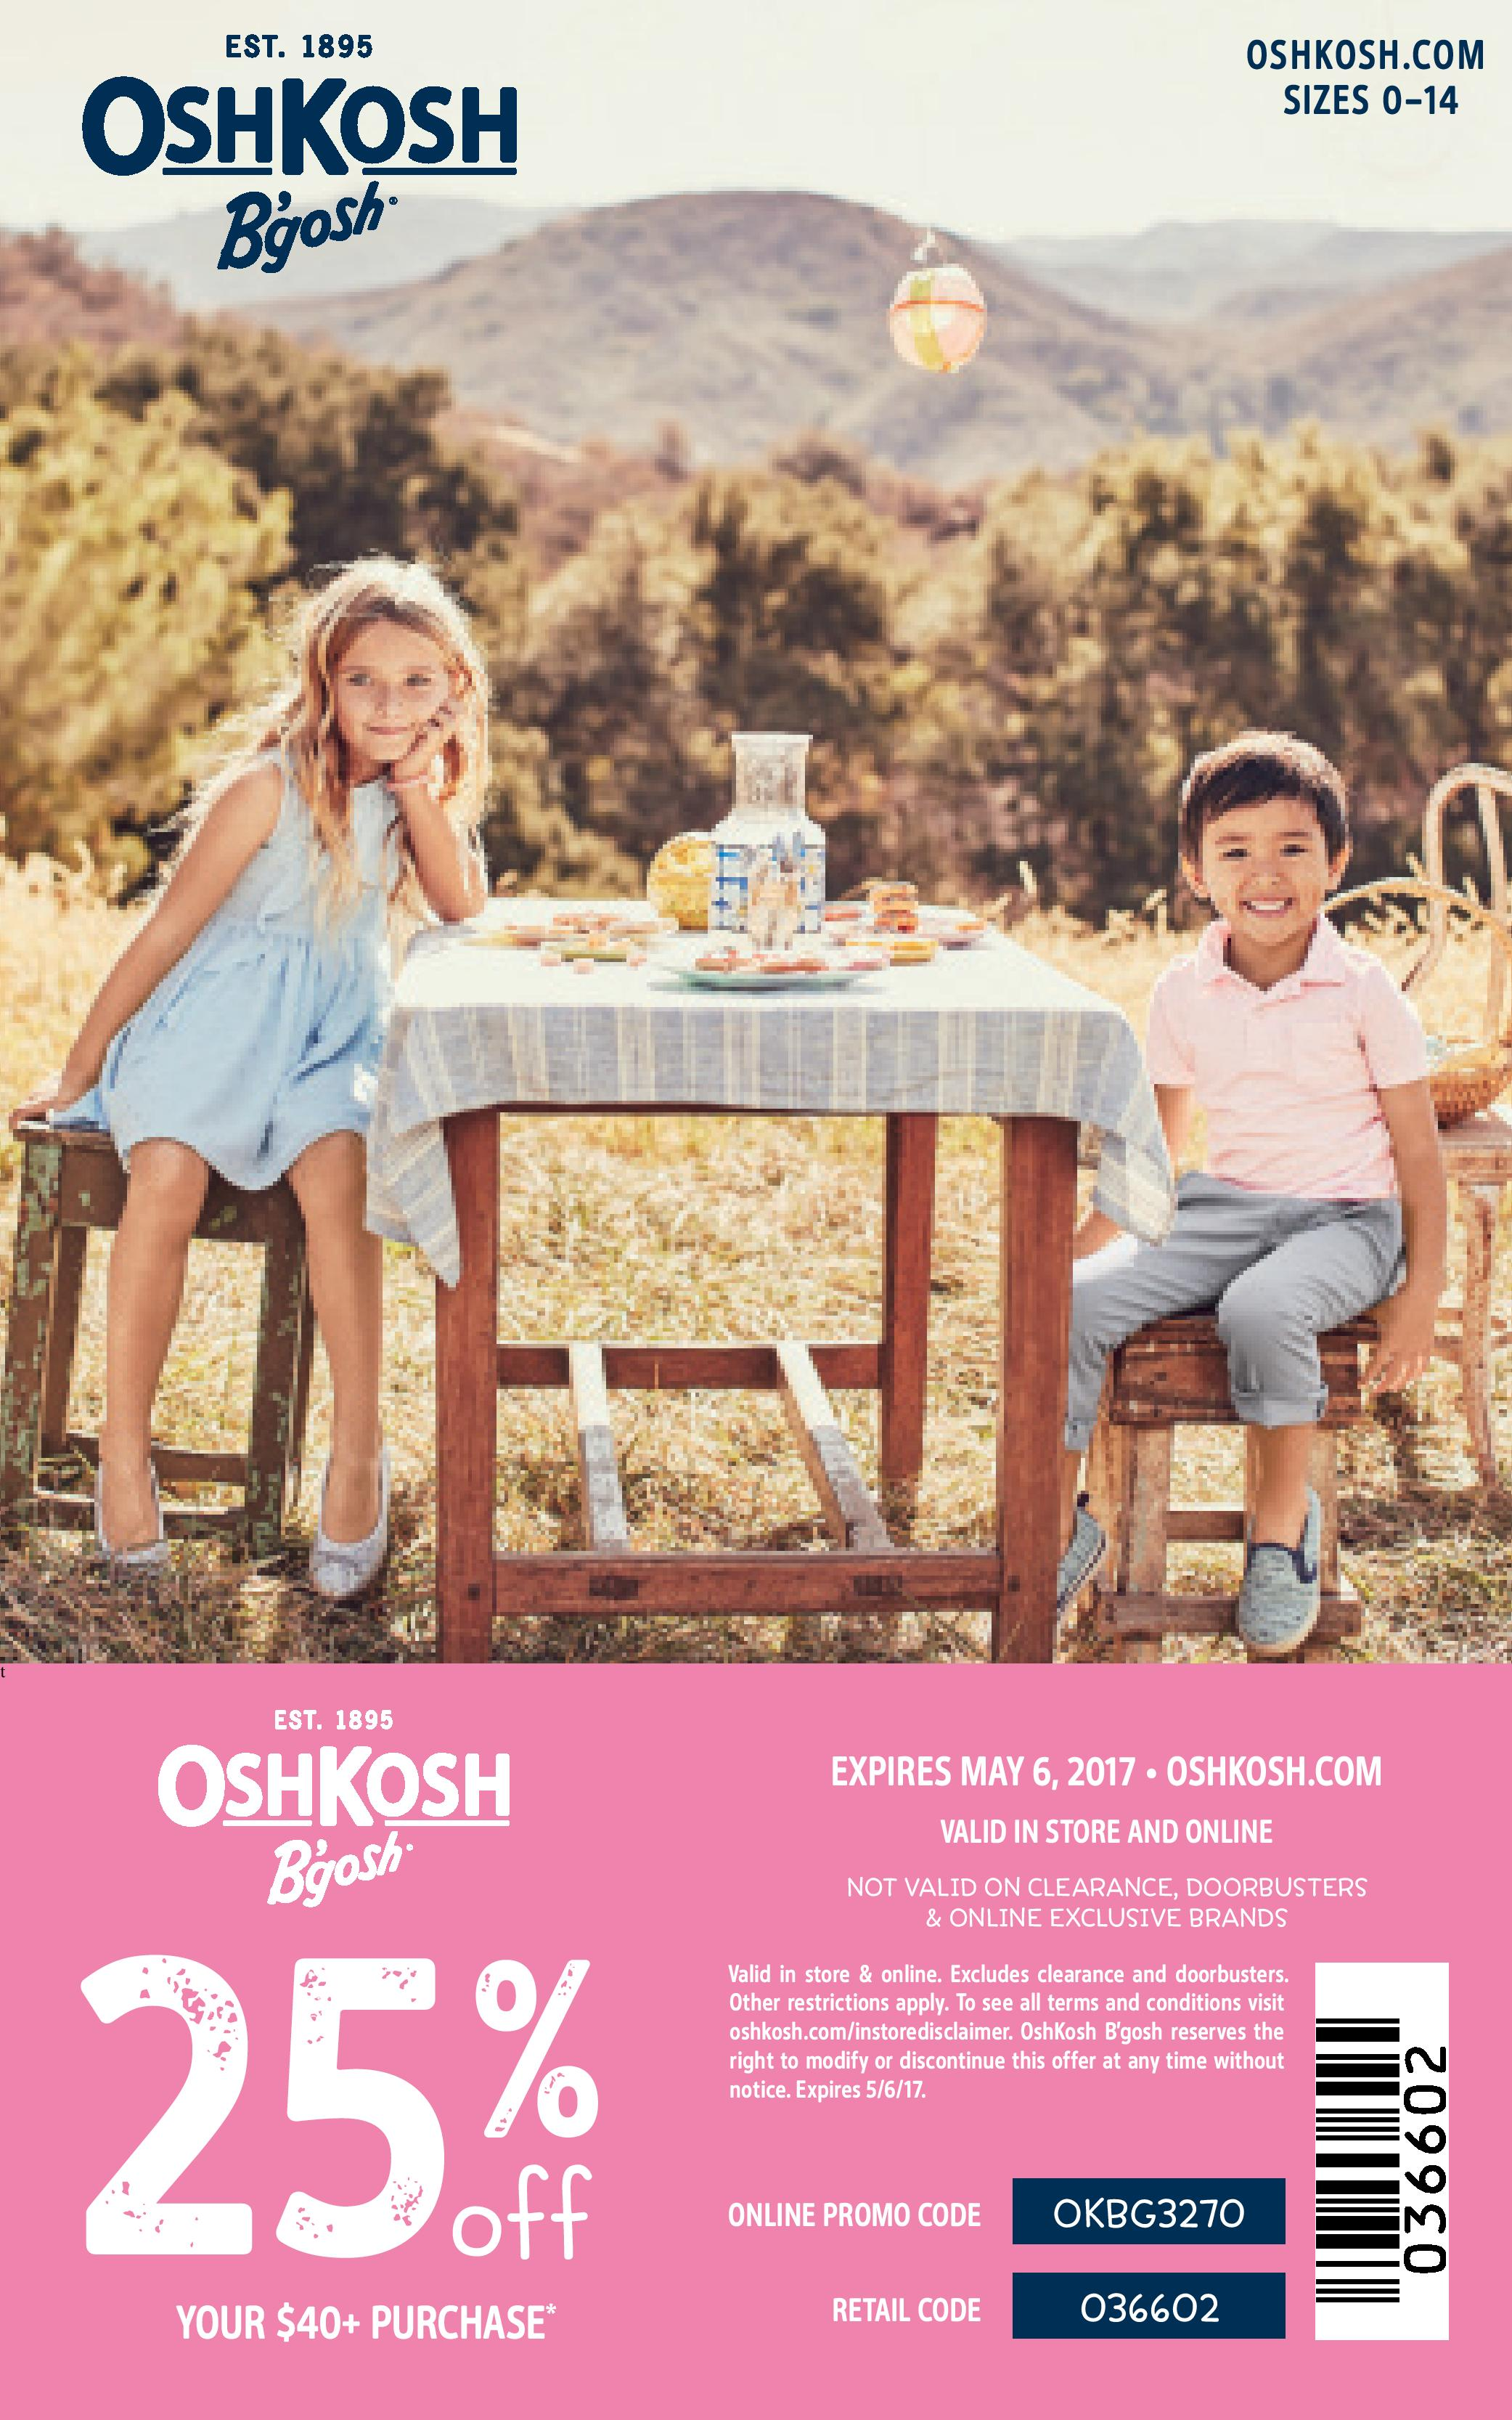 OshKoshBGosh-Fields-Of-Fun